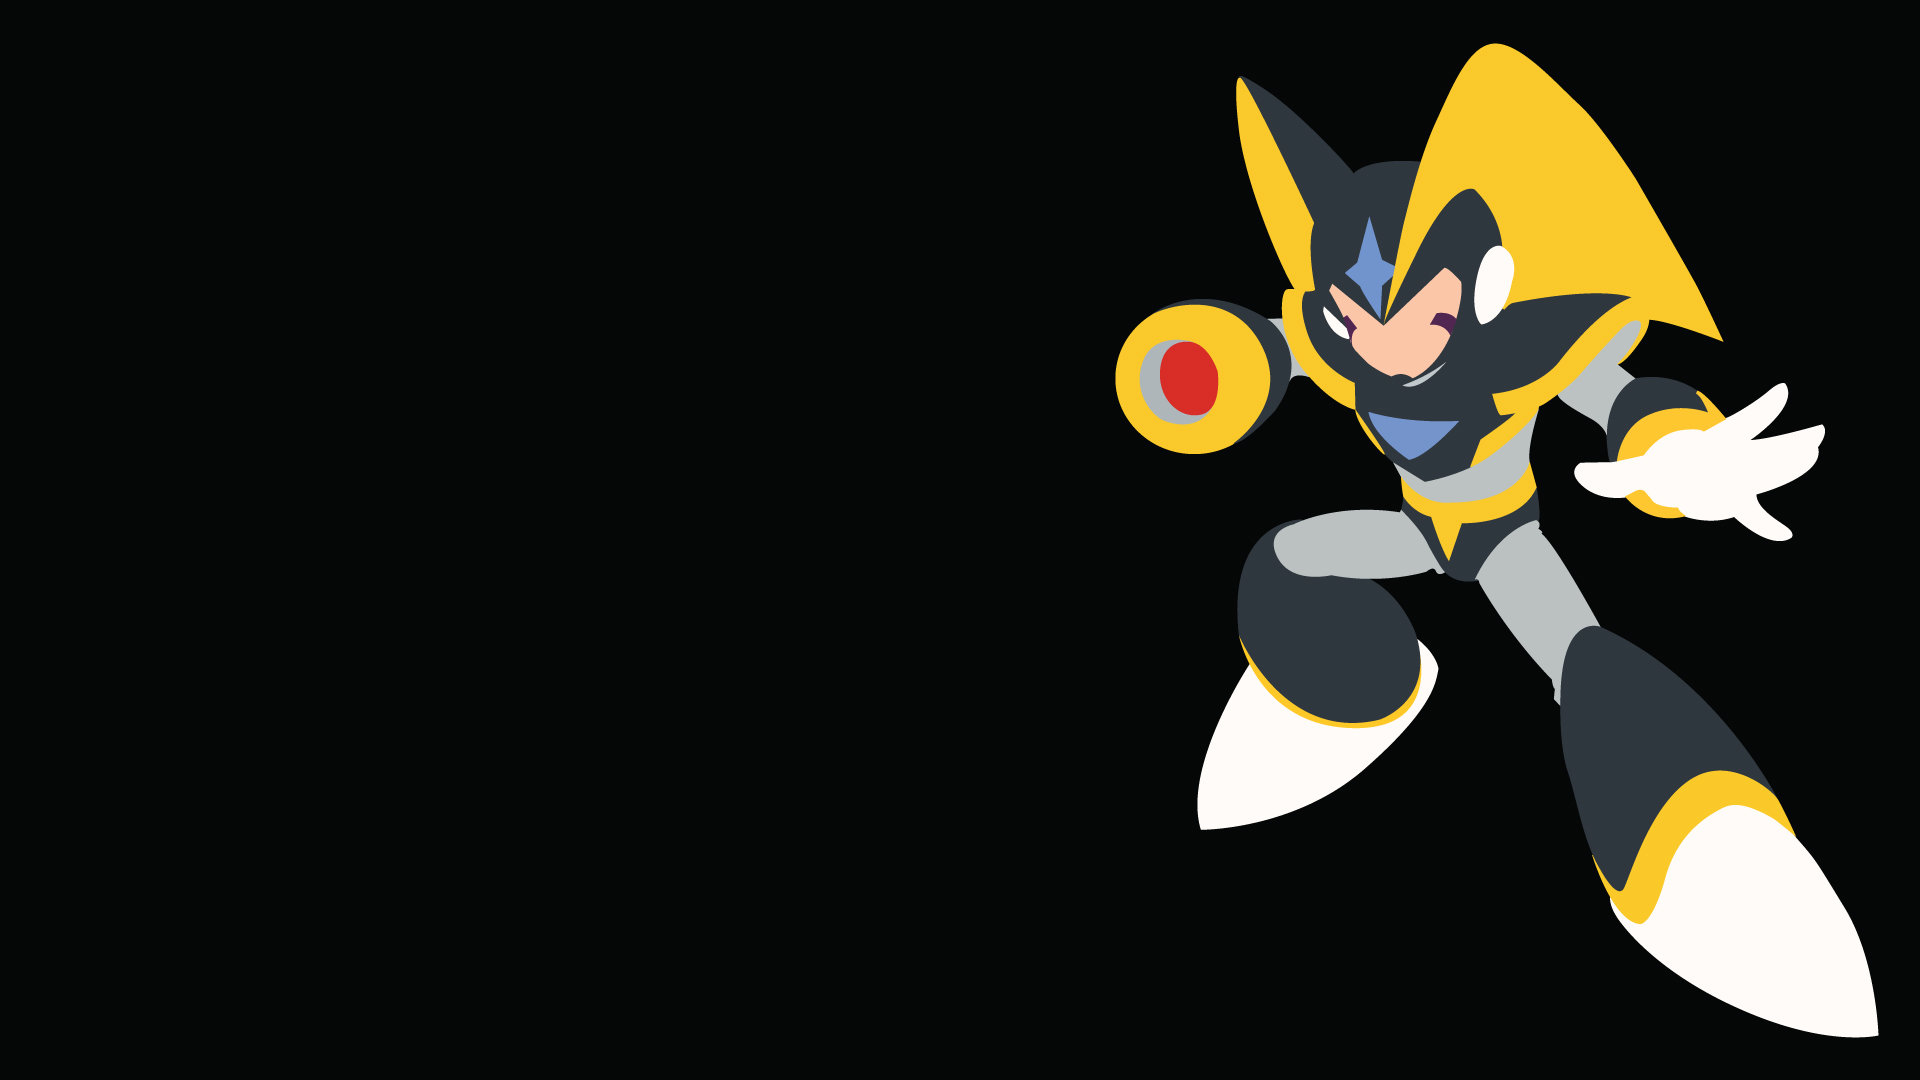 Best Mega Man wallpaper ID:29149 for High Resolution 1080p computer